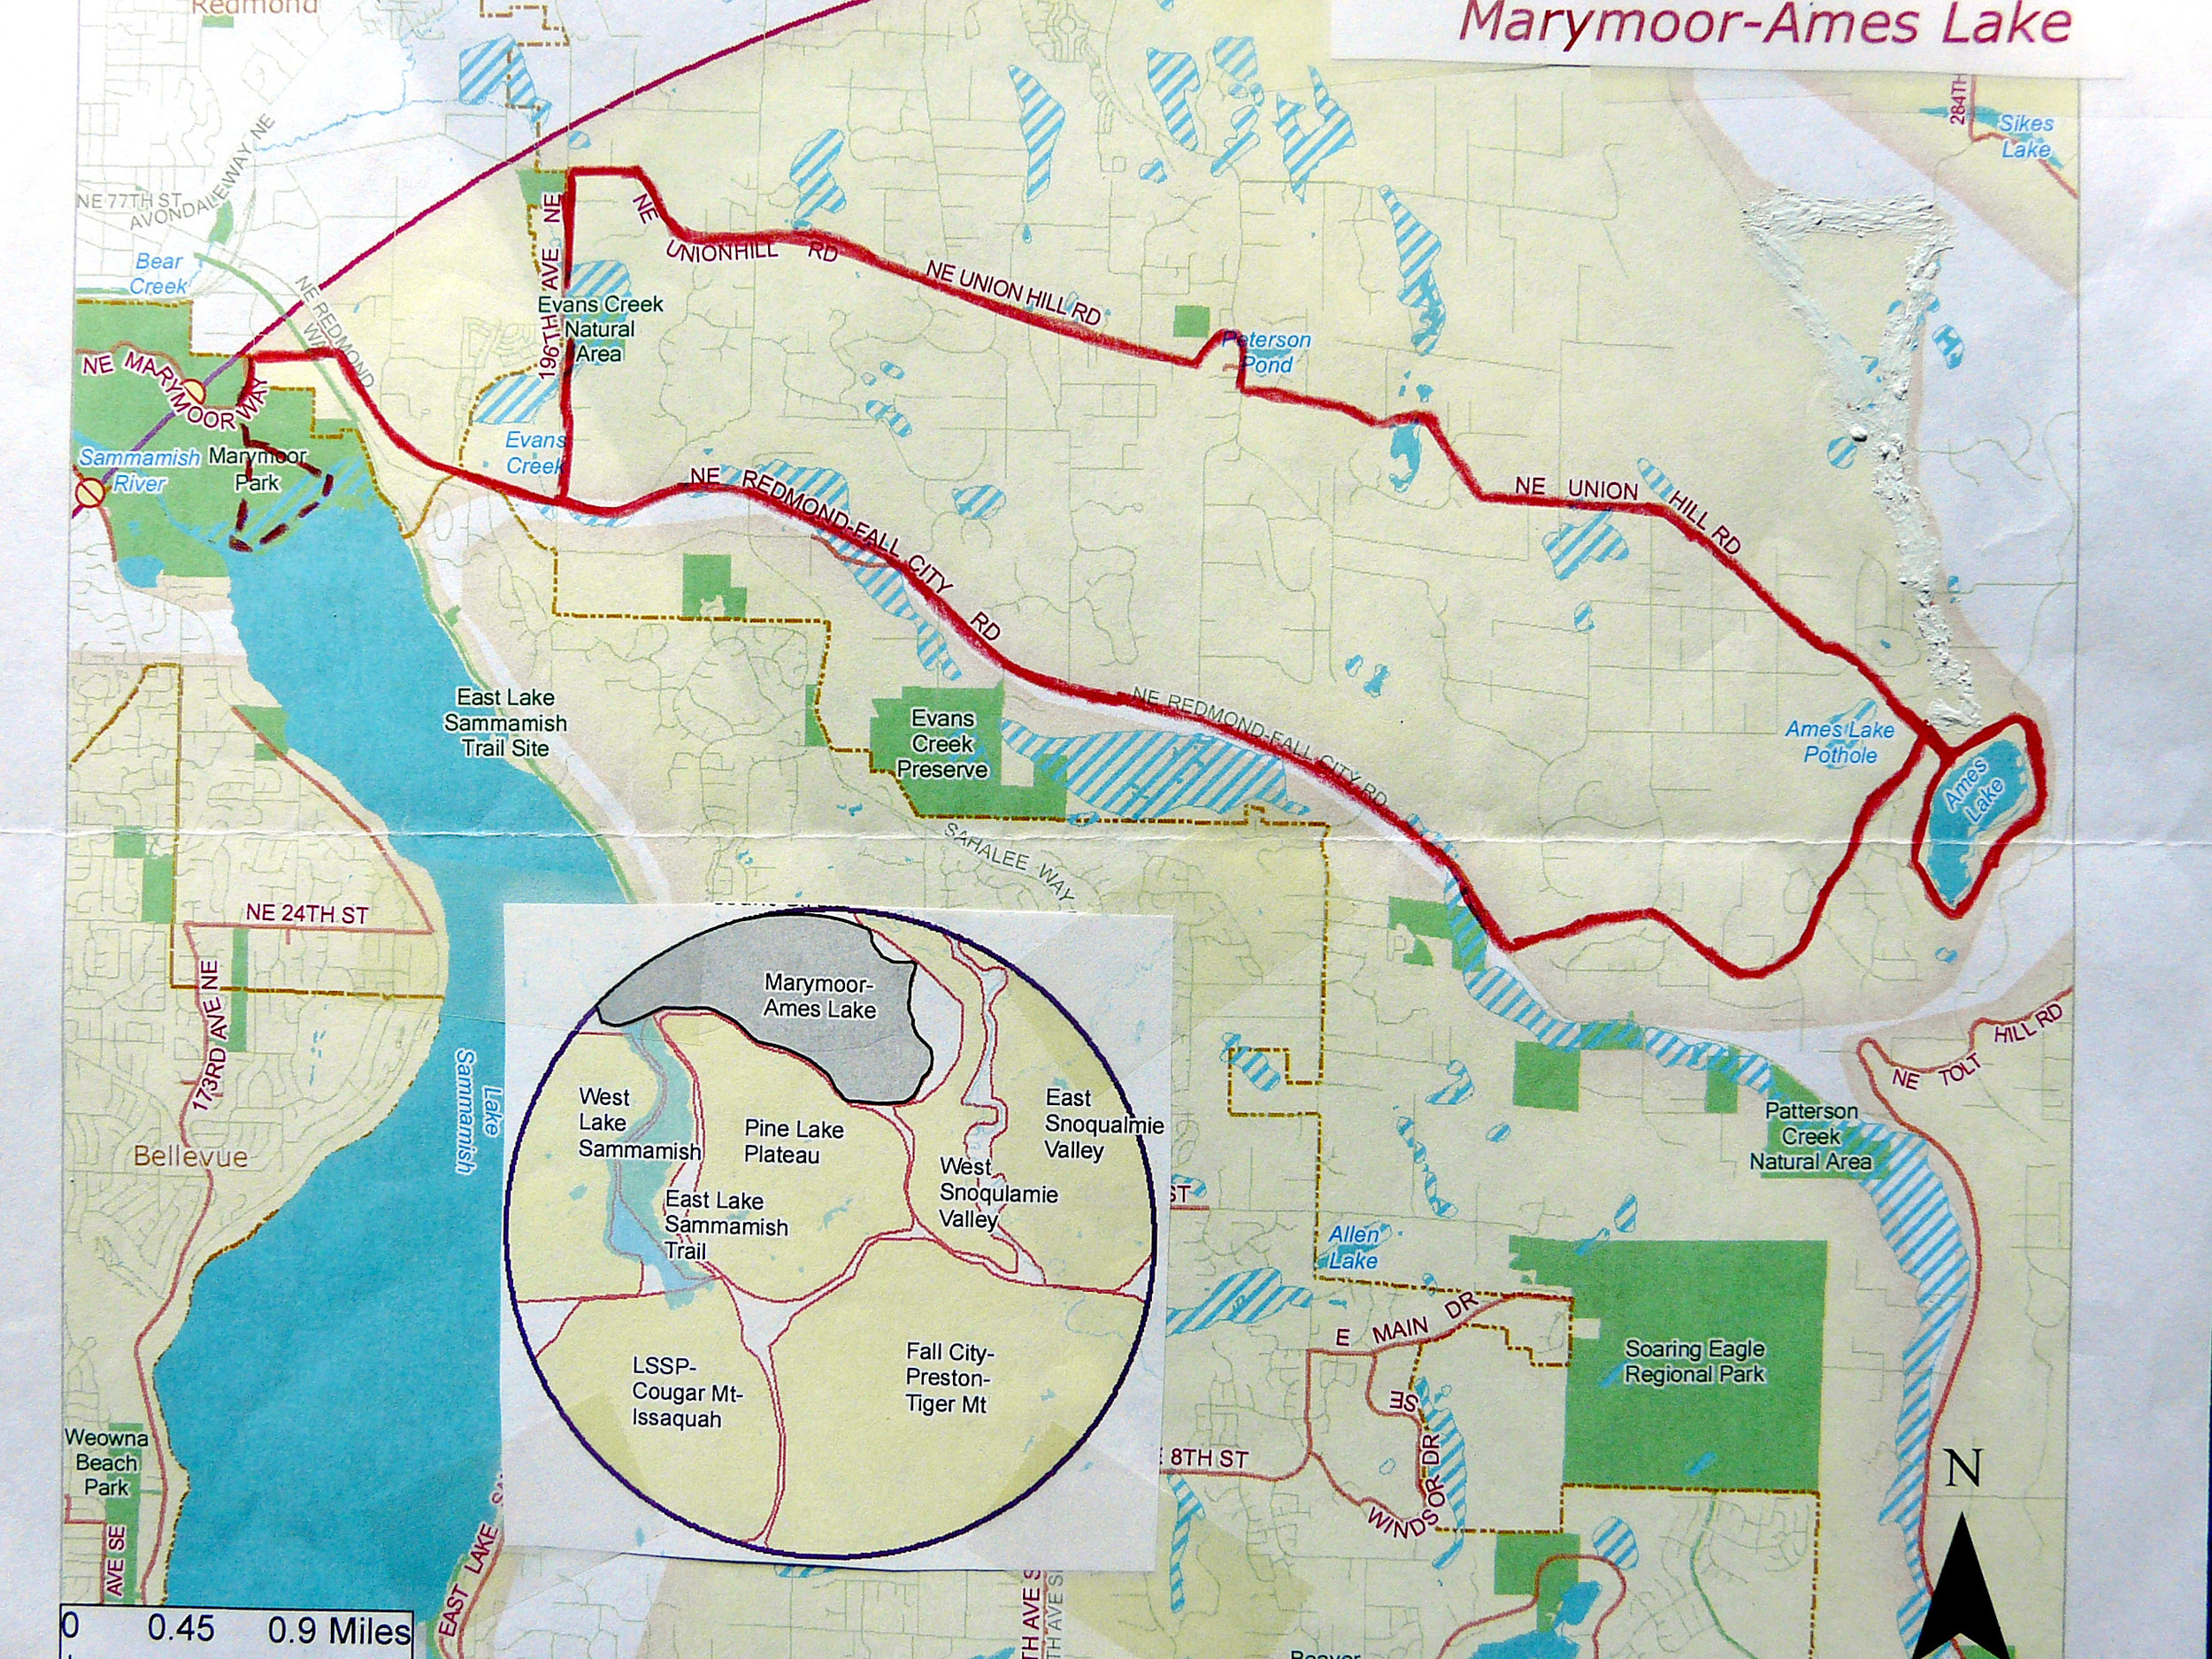 East Redmond, Ames Lake, and Evans Creek - 8 am to 1 pmAfter forming carpools, we make multiple stops by car and bird several areas, includes about 3-4 hours of being outside, walking and/or standing, and lunch along the way.Team leader: Jordan Roderick, jordan@roderick.com